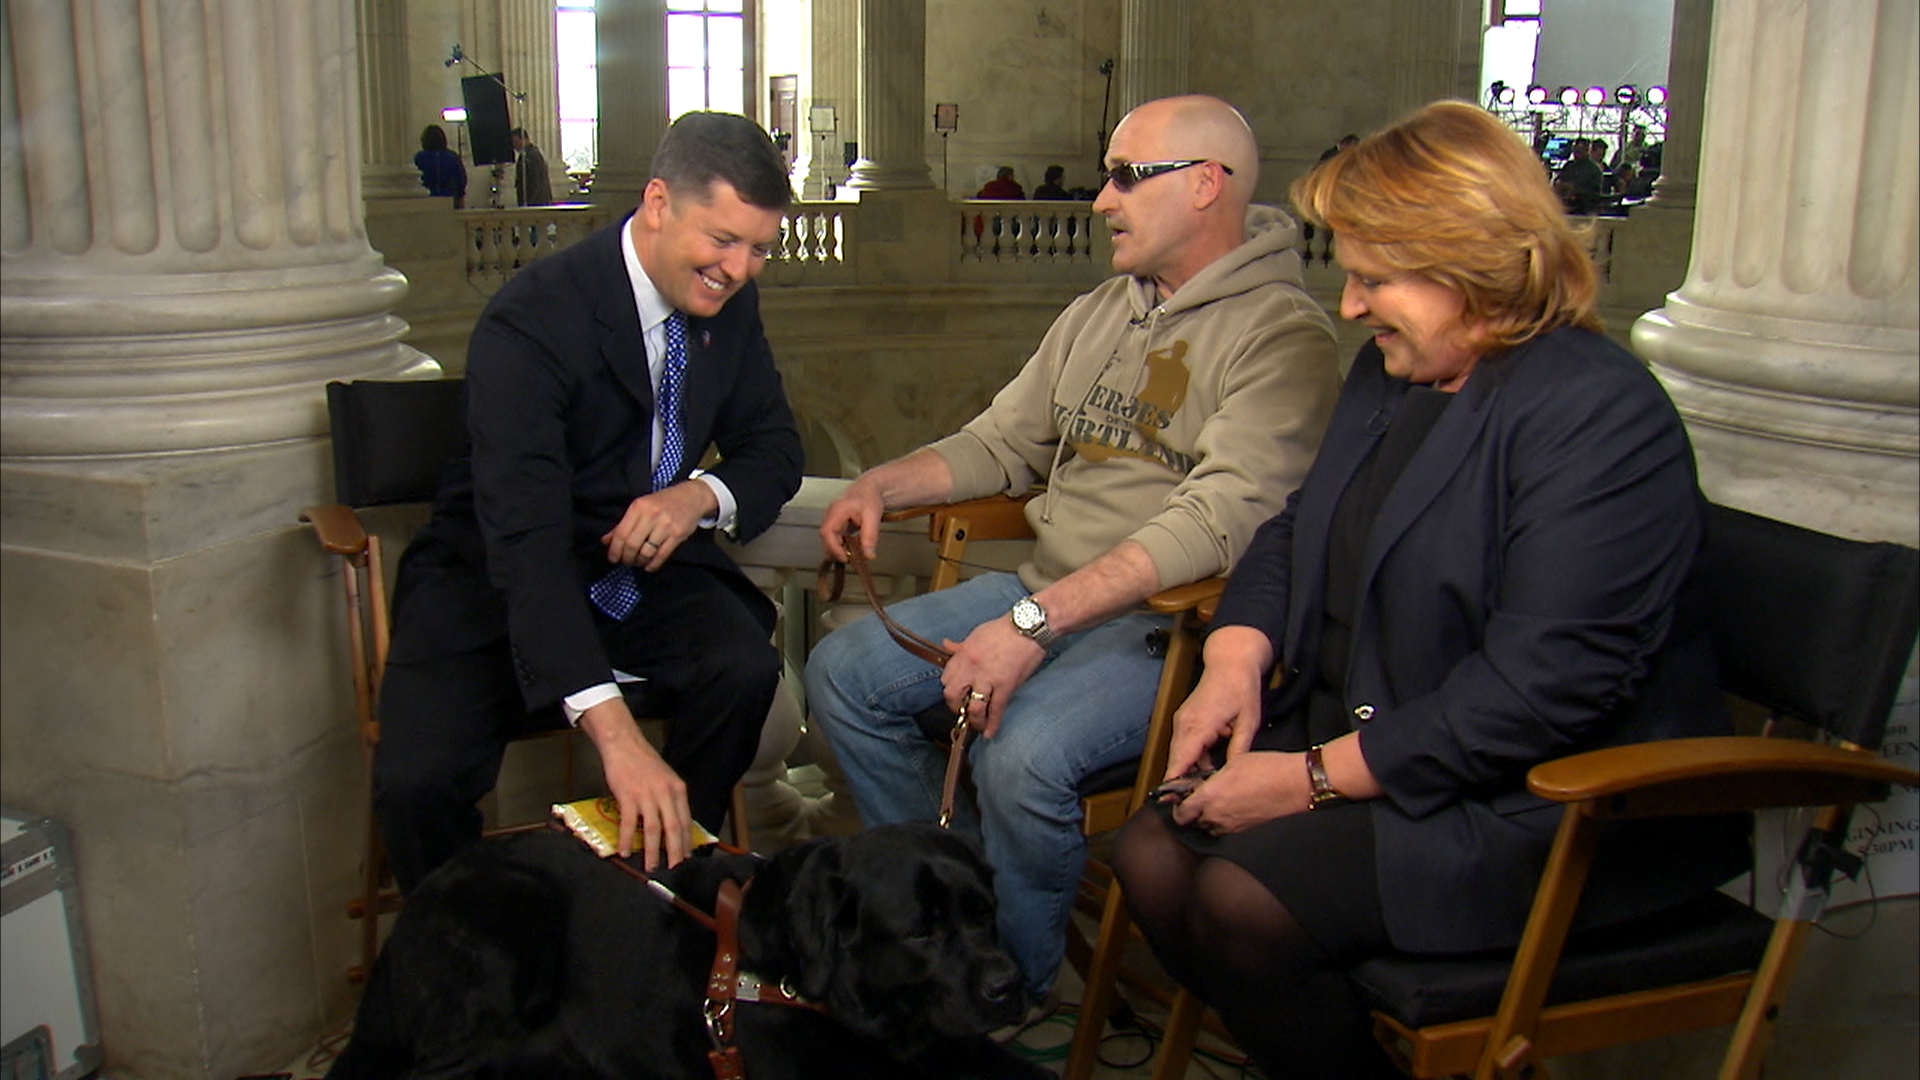 Deacon the service dog at the SOTU